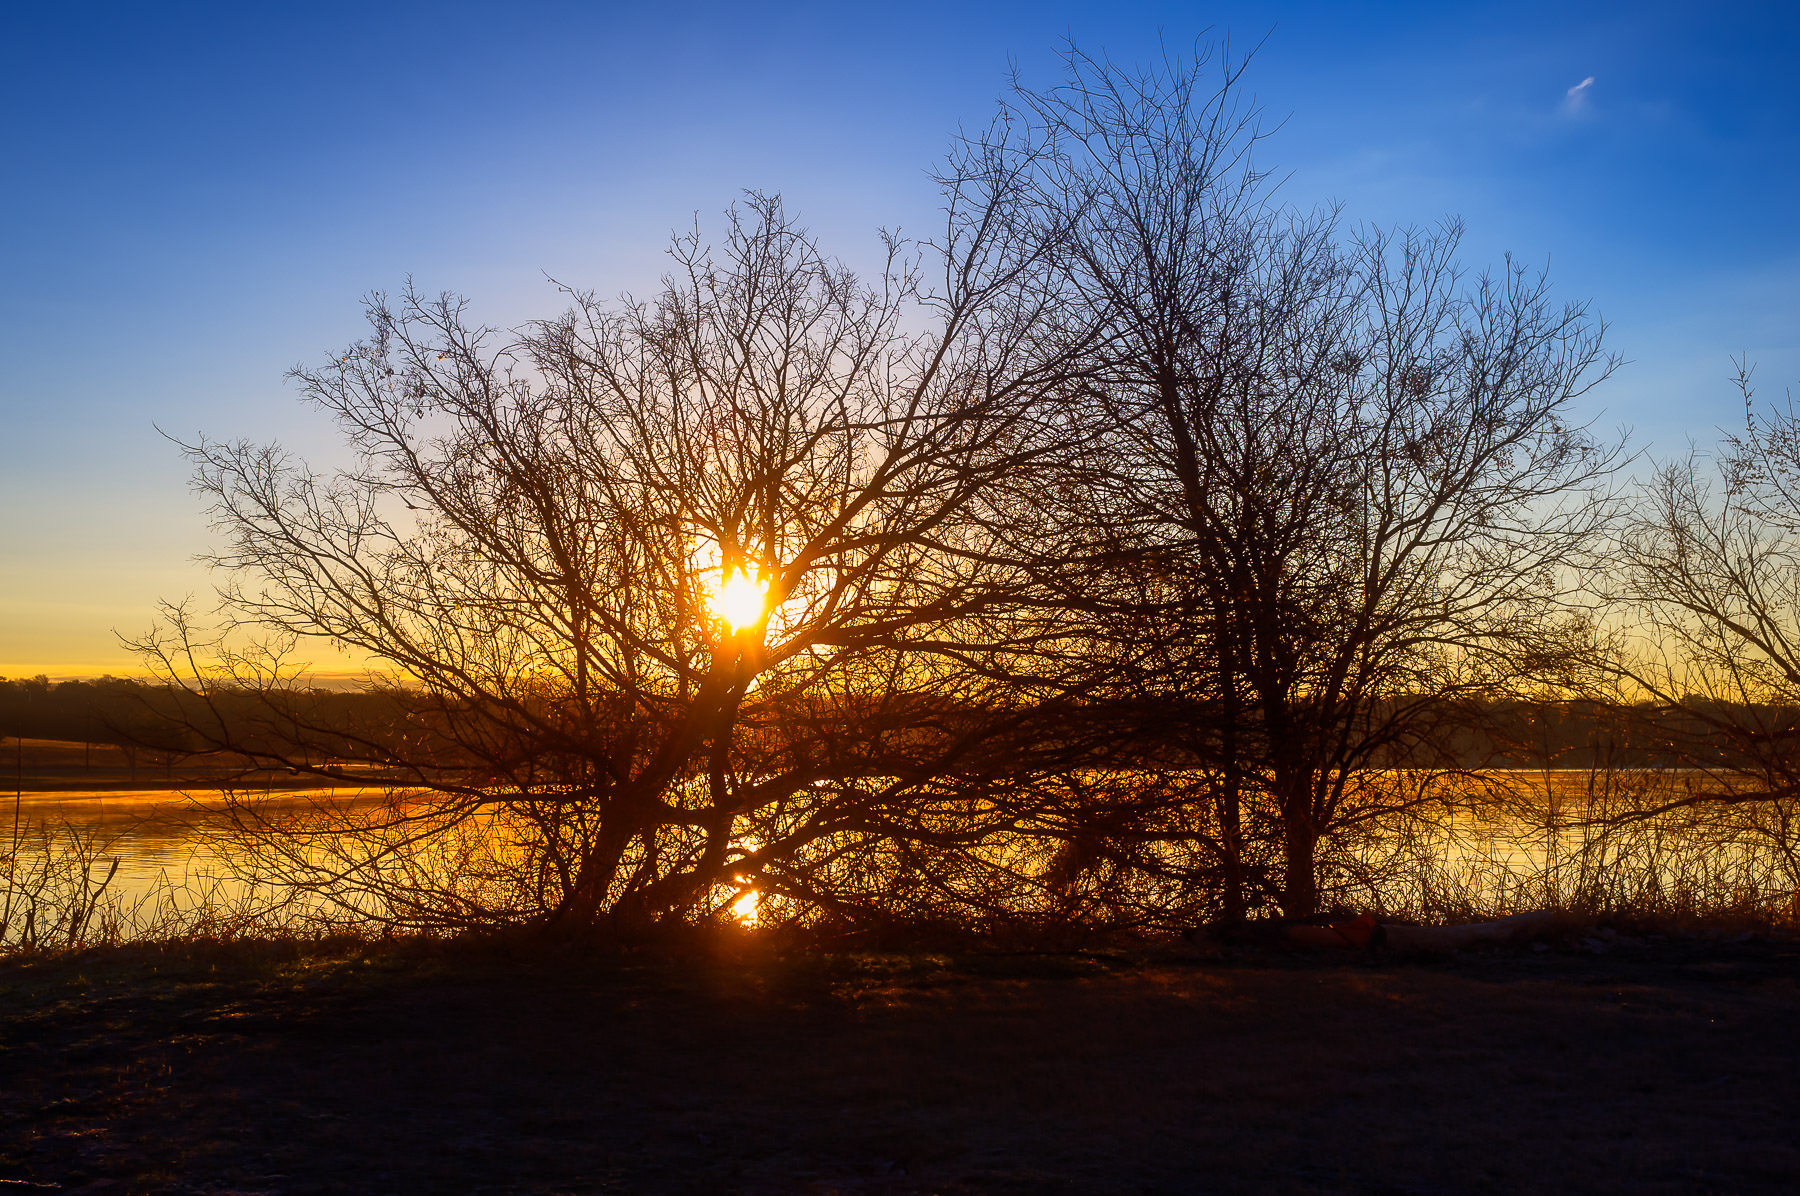 The sun rises over the east shore of Dallas' White Rock Lake.